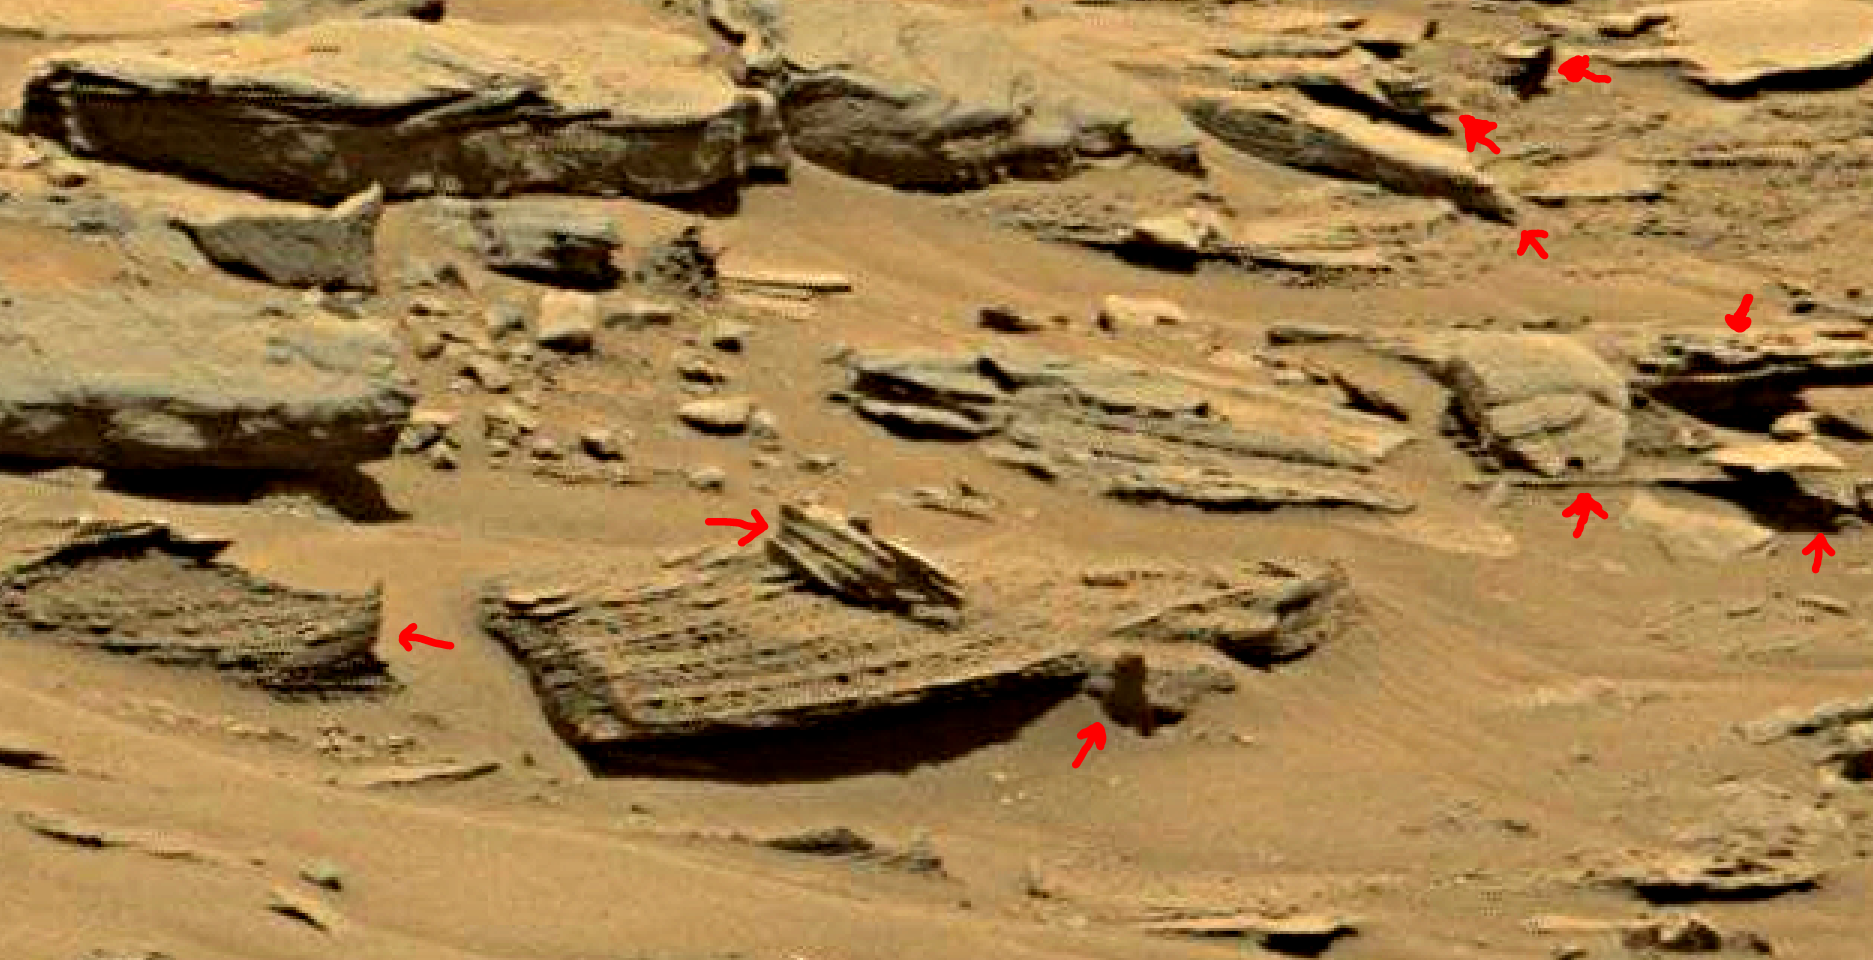 mars sol 1353 anomaly-artifacts 35a was life on mars